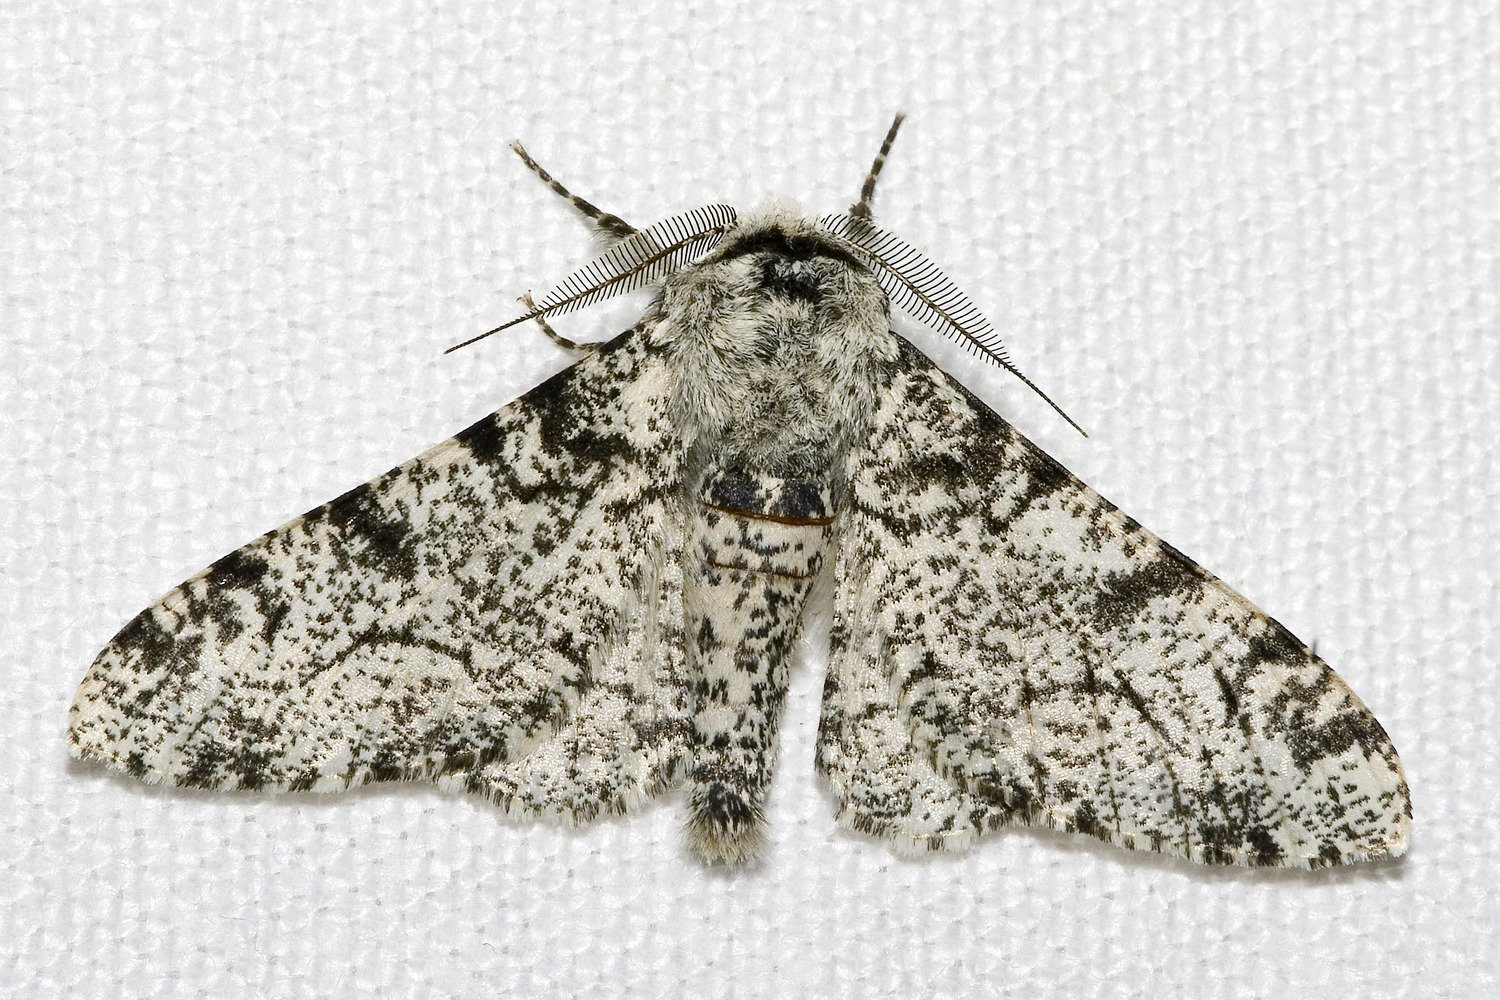 A white form of peppered moth.